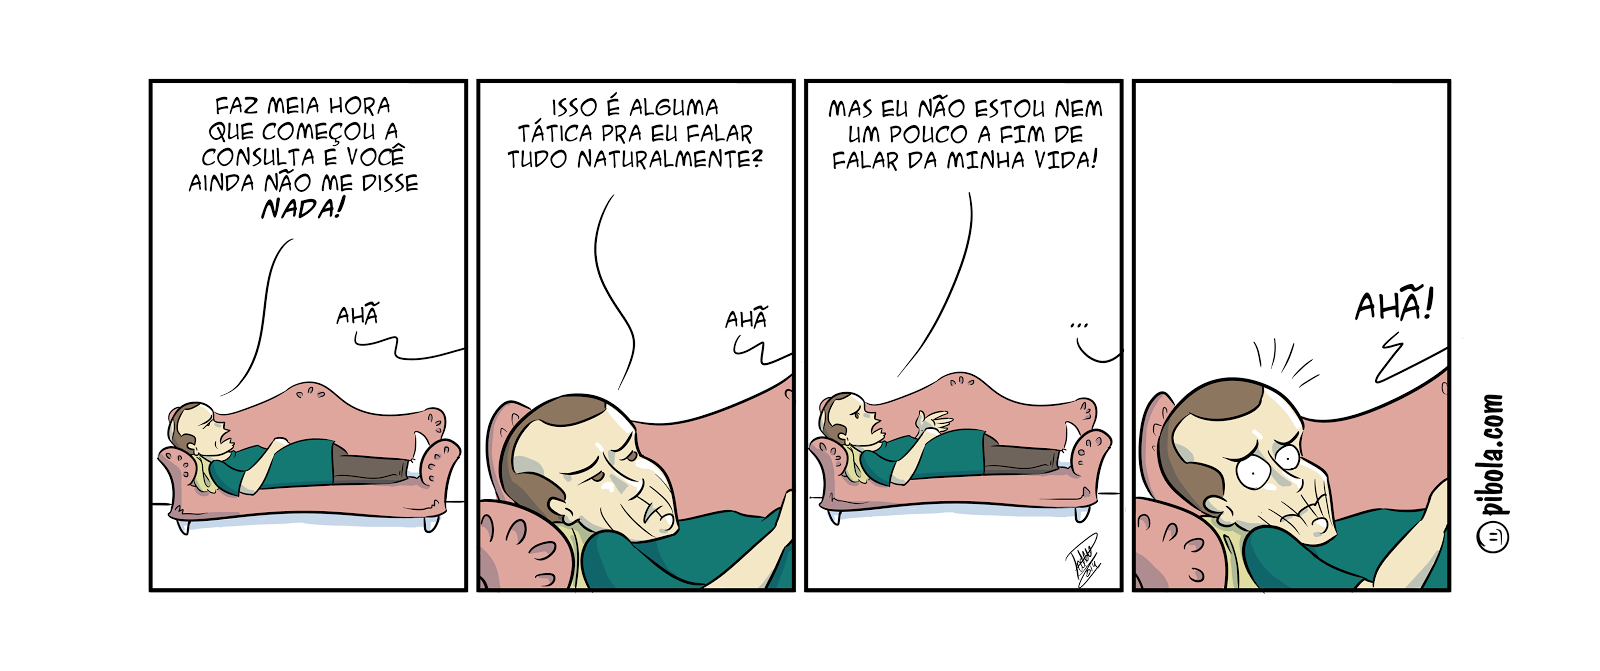 Terapia -Porque fazer?